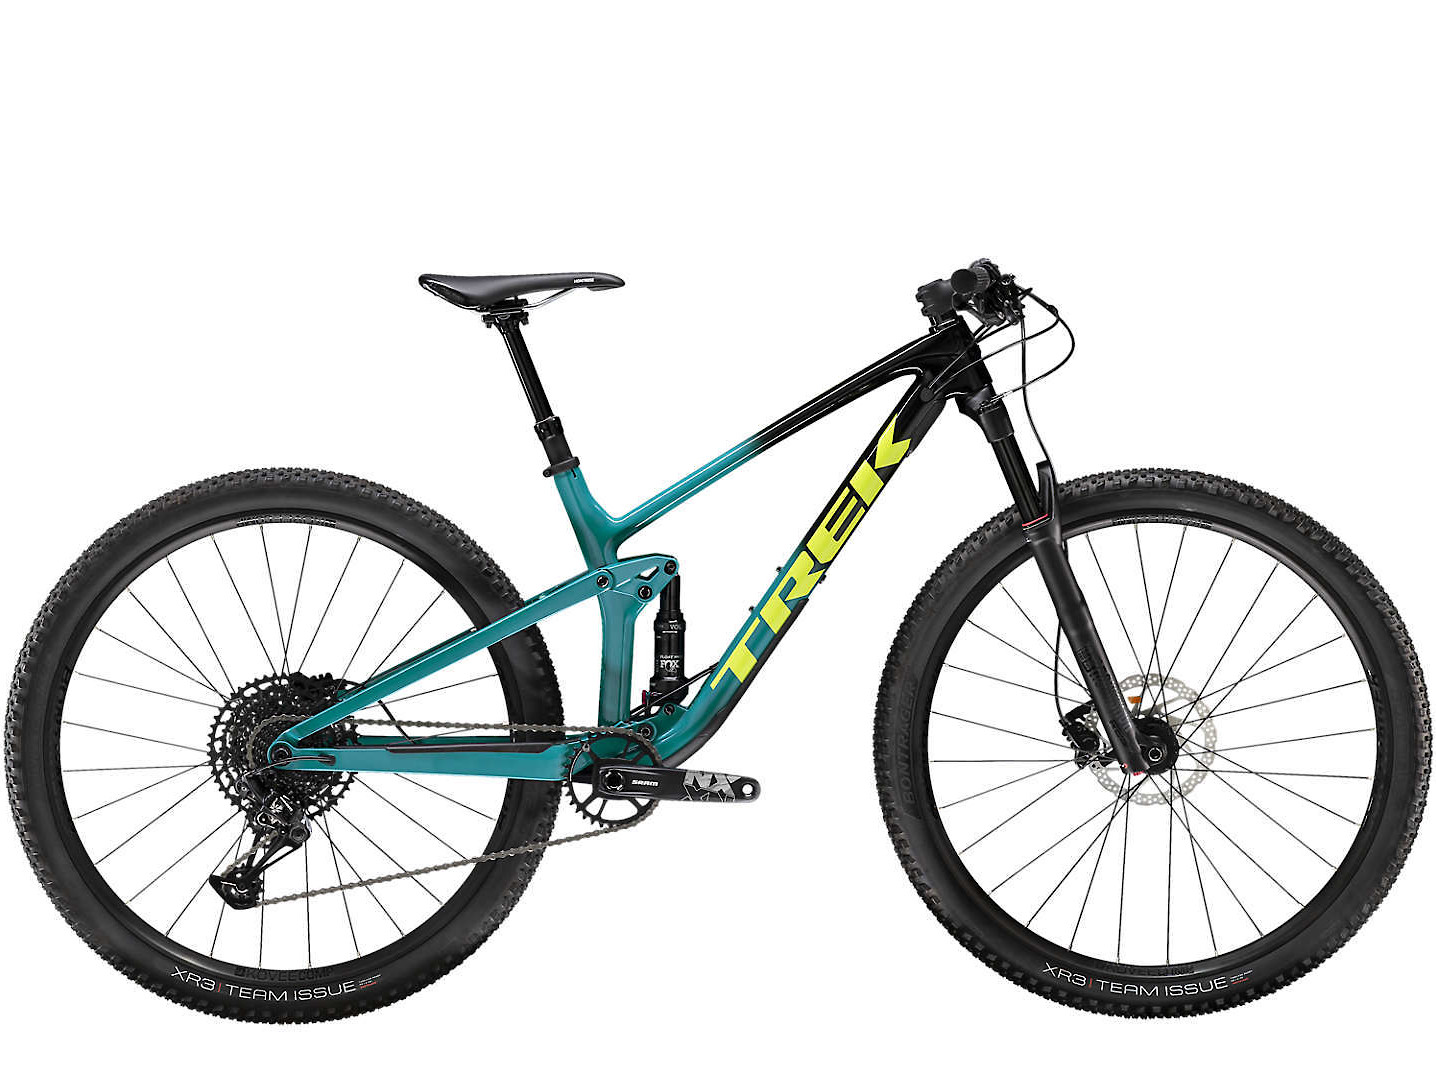 2020 Trek Top Fuel 9.7 in Trek Black to Teal Fade